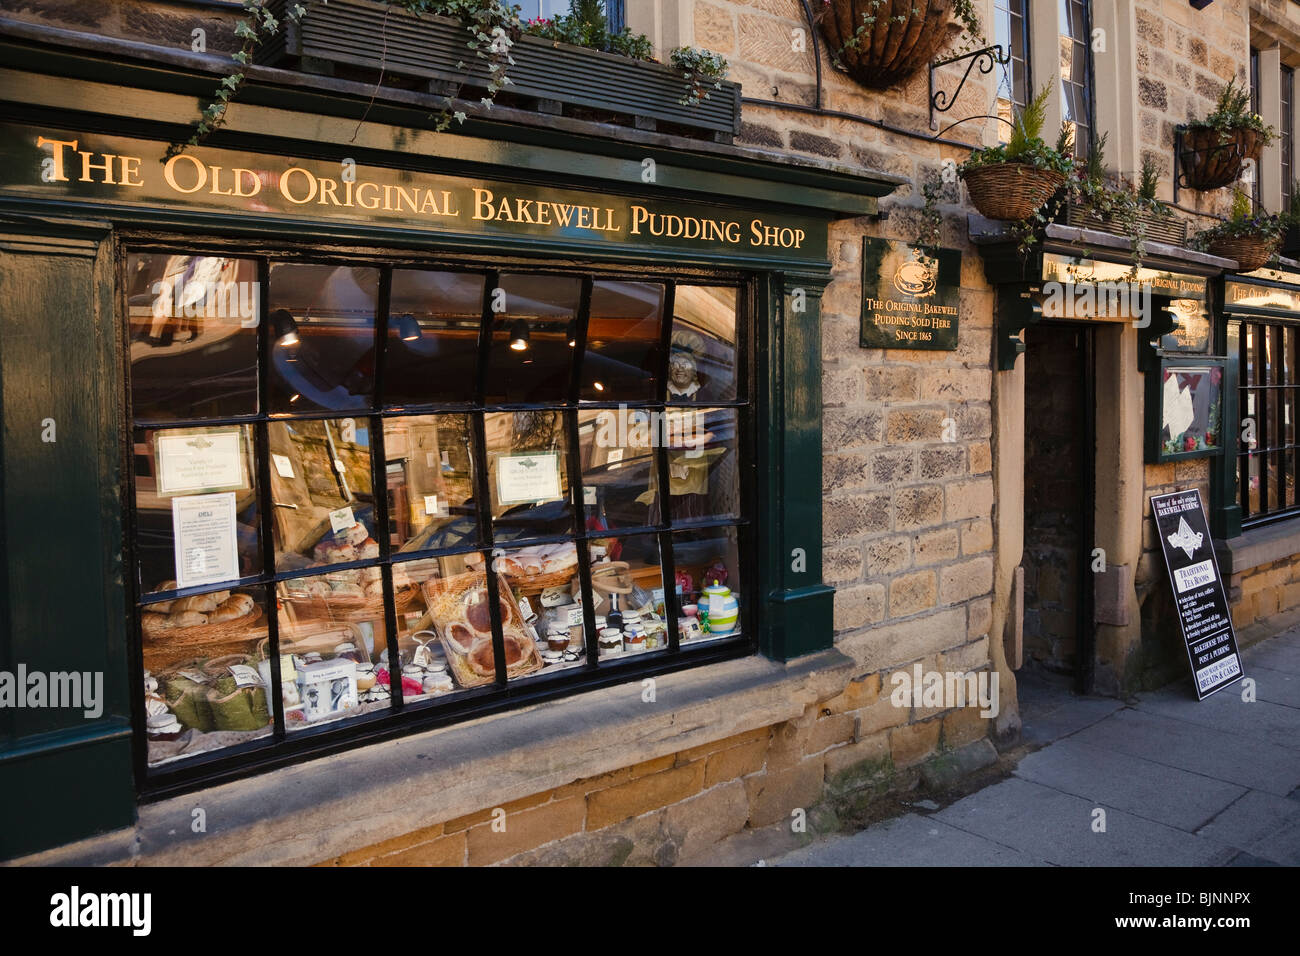 The Old Original Bakewell Pudding Shop, The Square, Bakewell, Peak District National Park, Derbyshire. - Stock Image